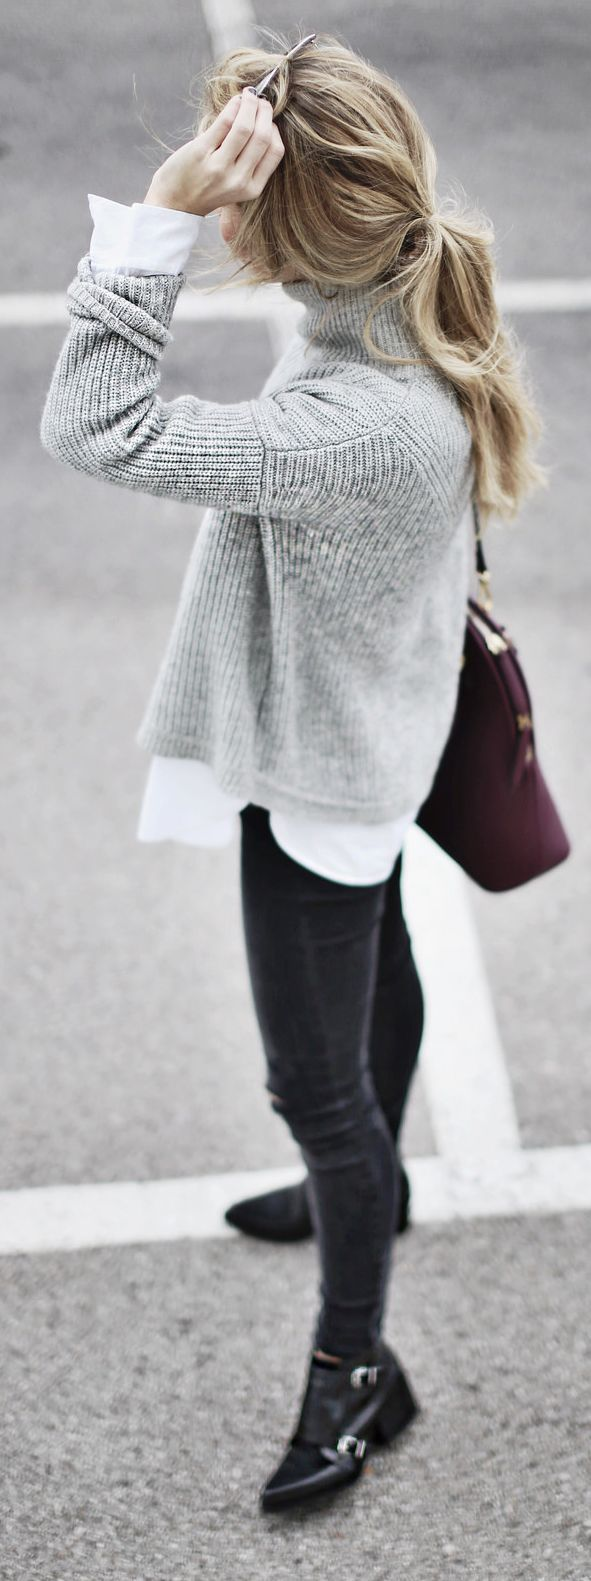 White shirt, grey jumper, black jeans and buckled boots